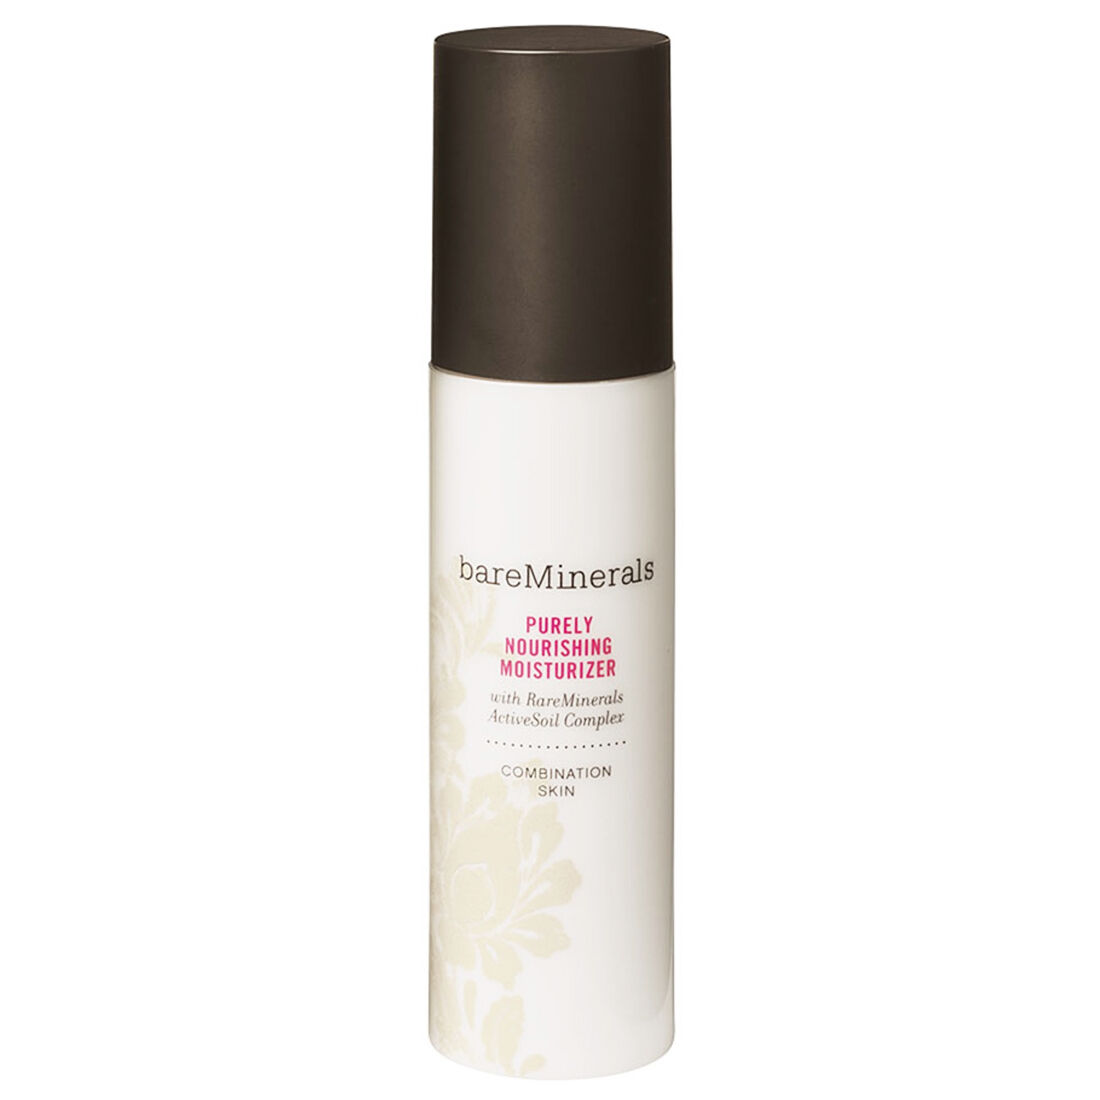 Bare Minerals Purely Nourishing Moisturizer Combination Skin